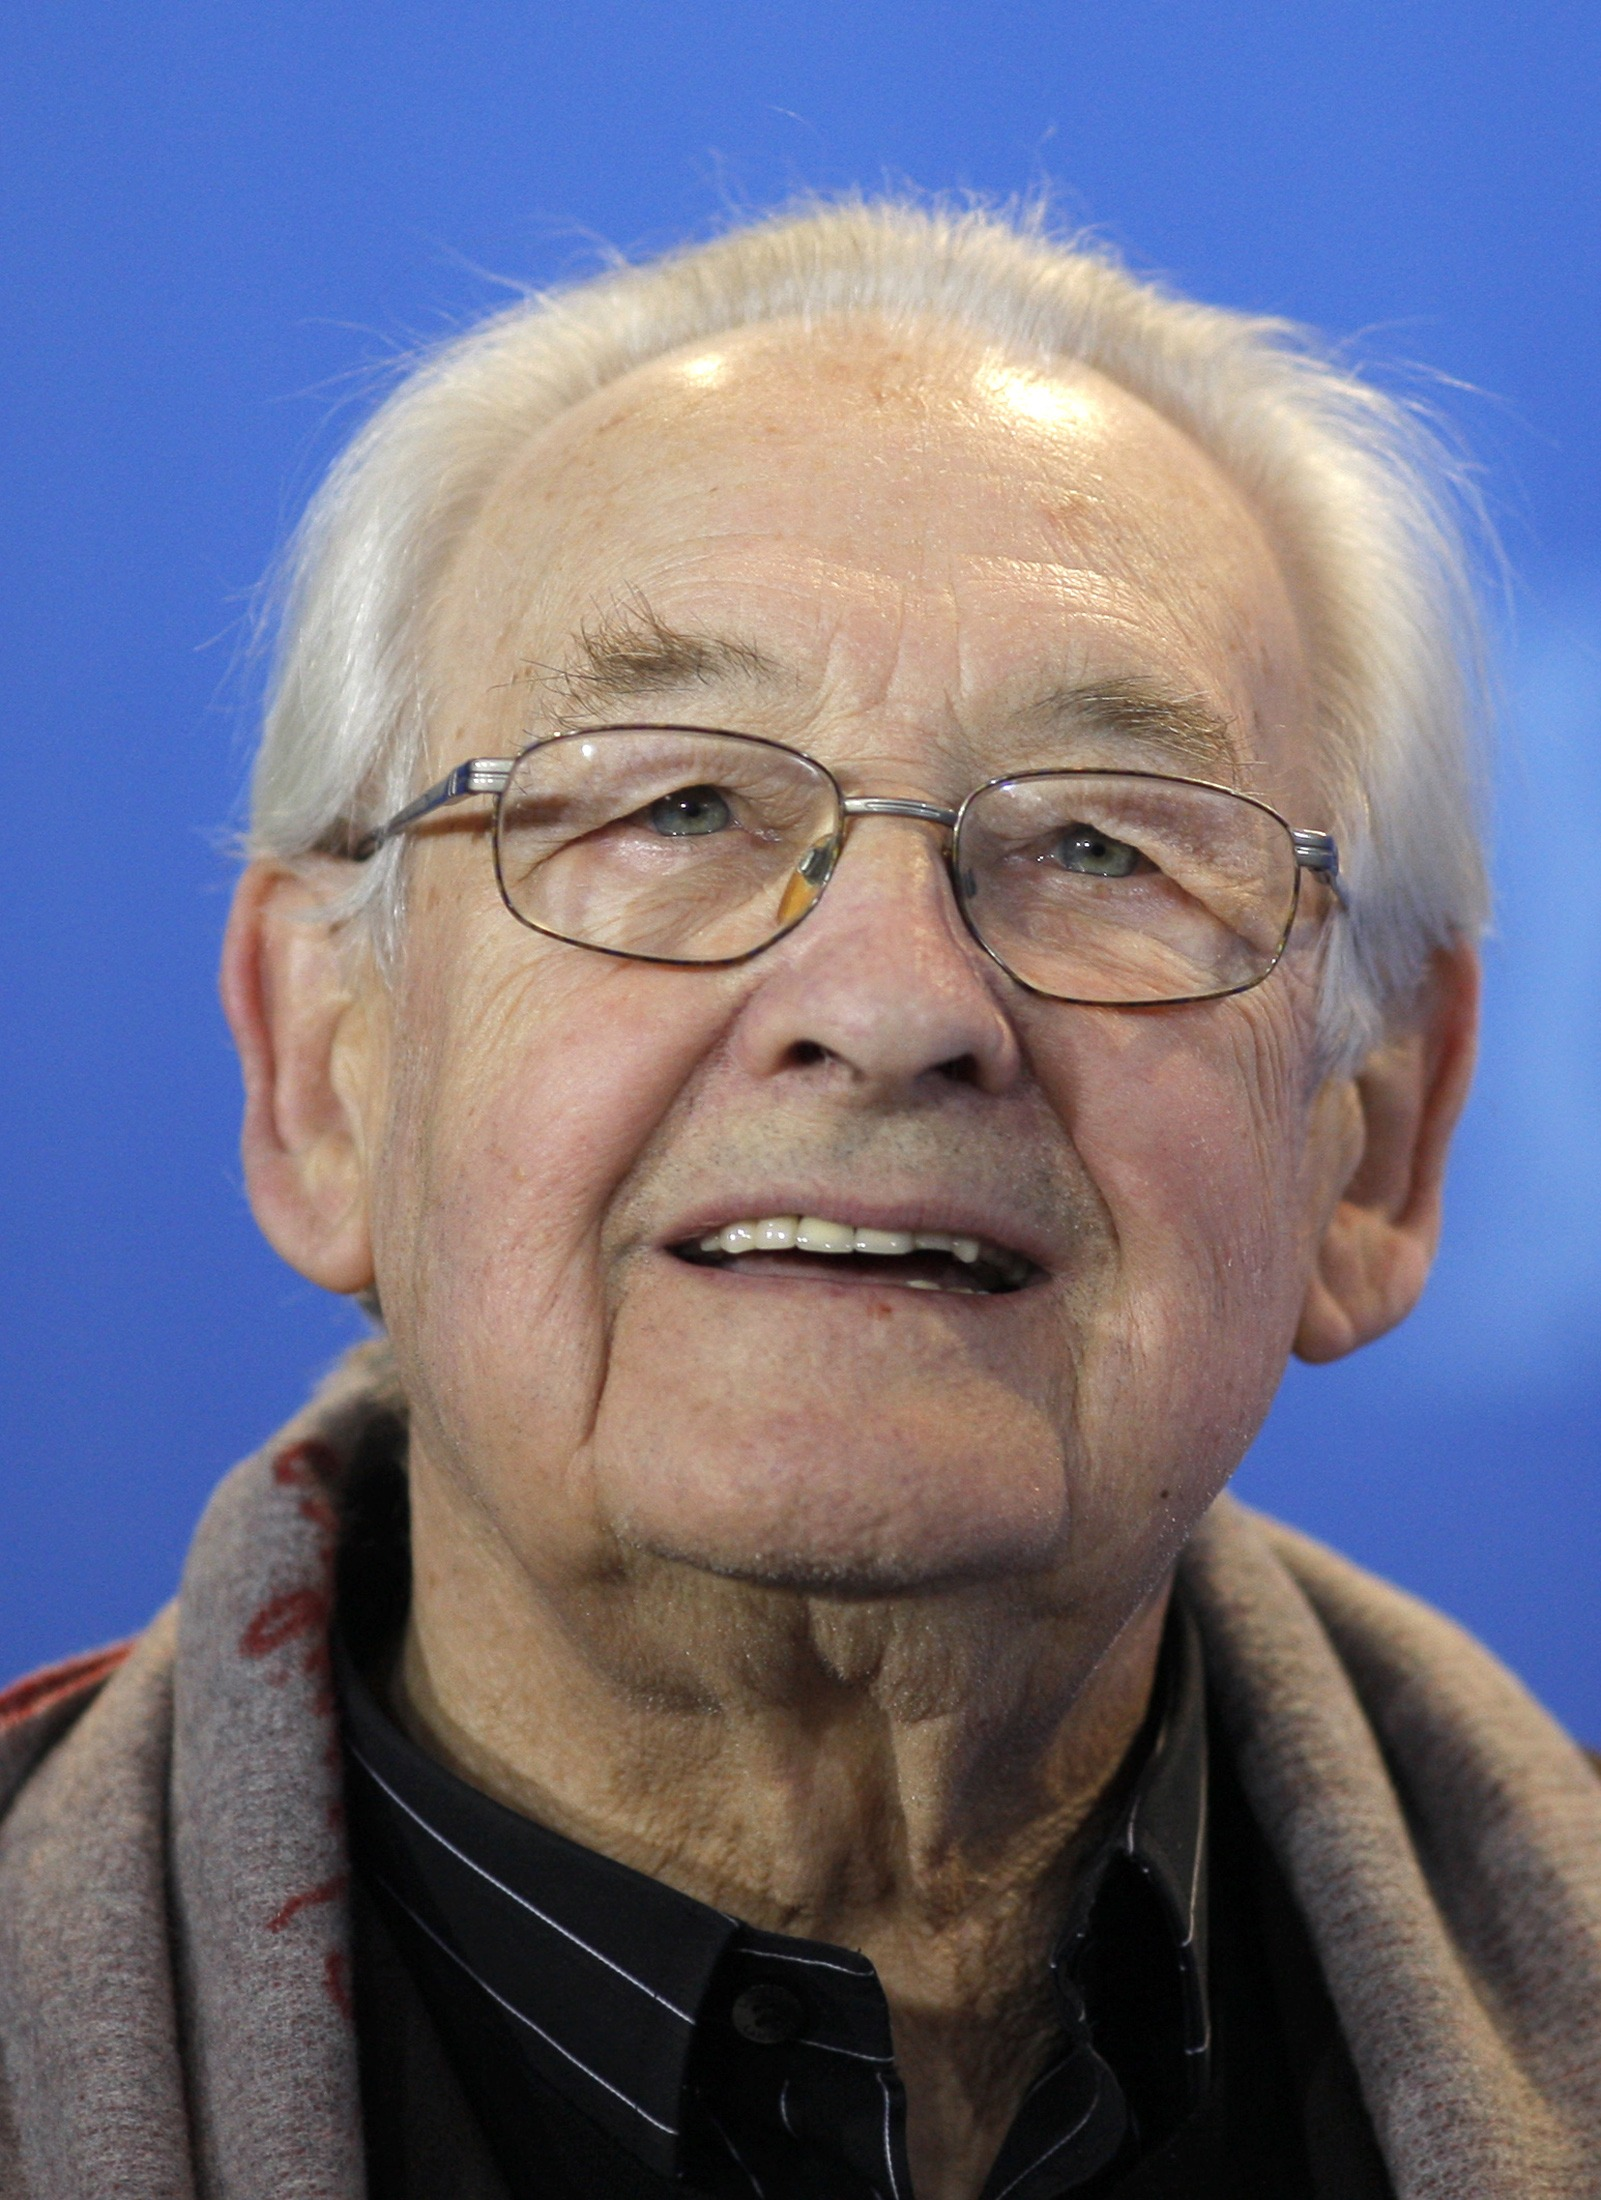 Director Andrzej Wajda poses during a photocall to promote the movie 'Sweet Rush' at the 59th Berlinale film festival in Berlin, Germany on Friday.